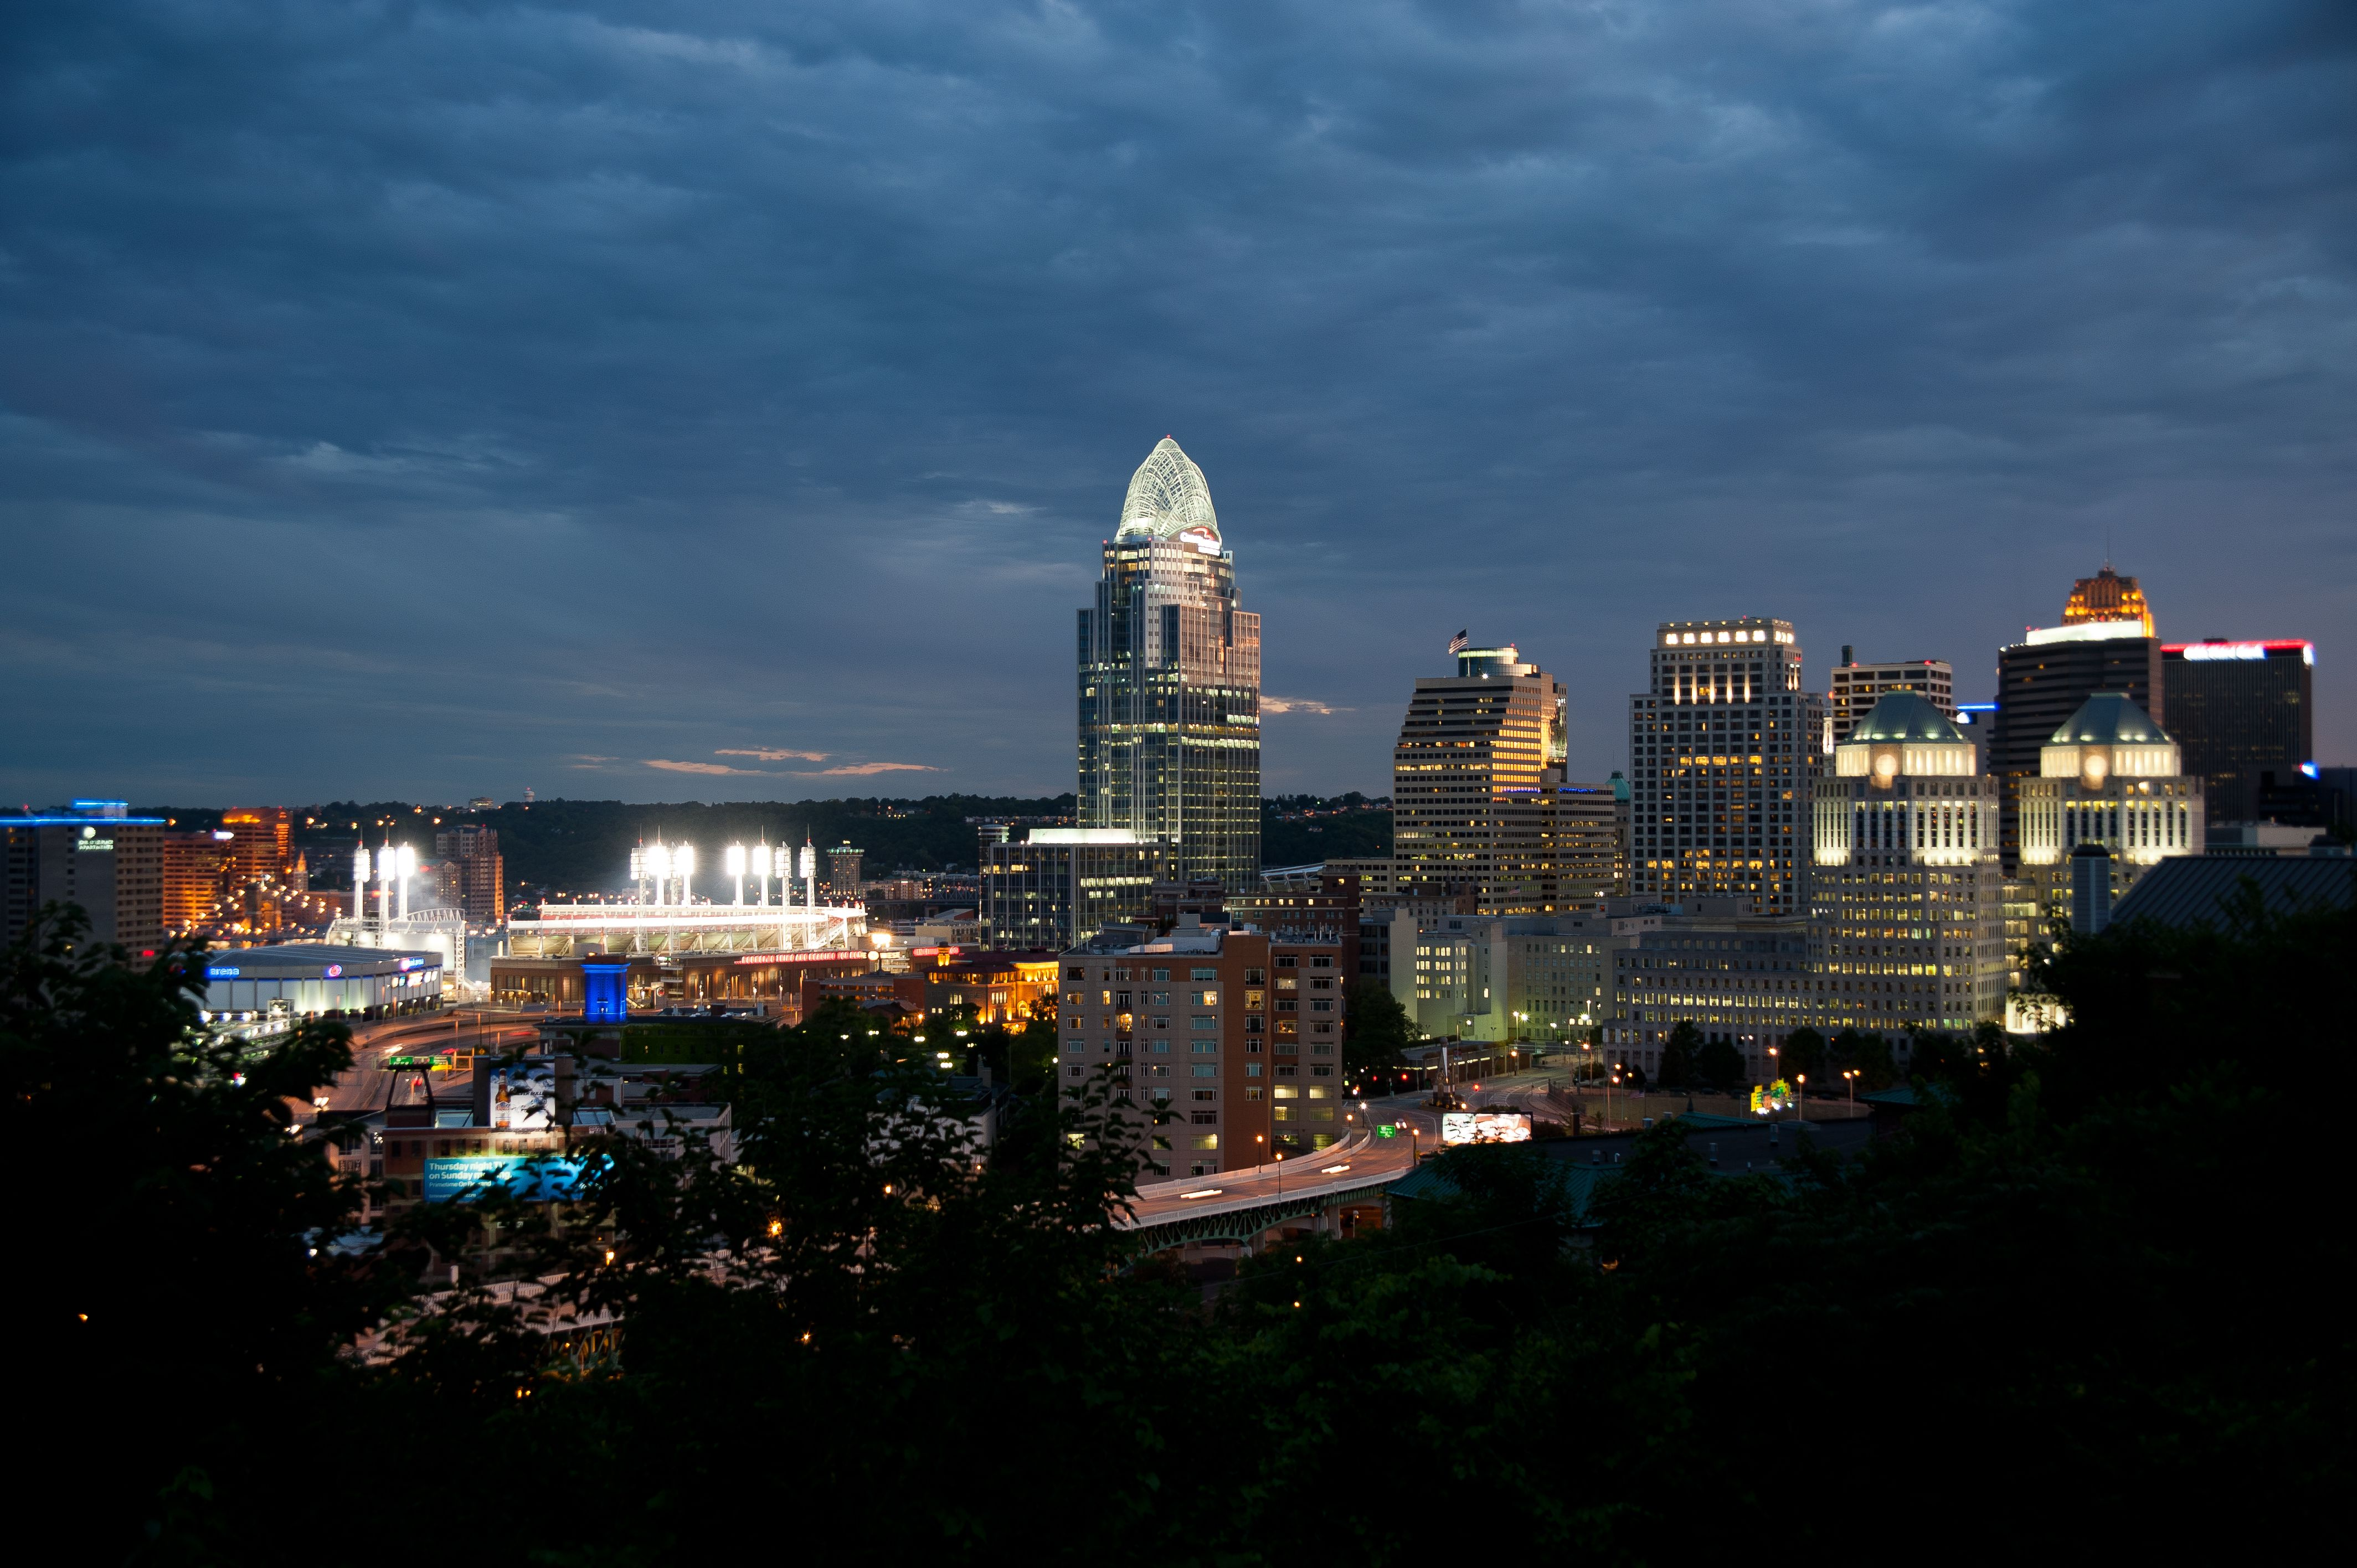 Cincinnati is headquarters to 15 Fortune 1,000 companies, which offer internships and jobs to many Xavier students.